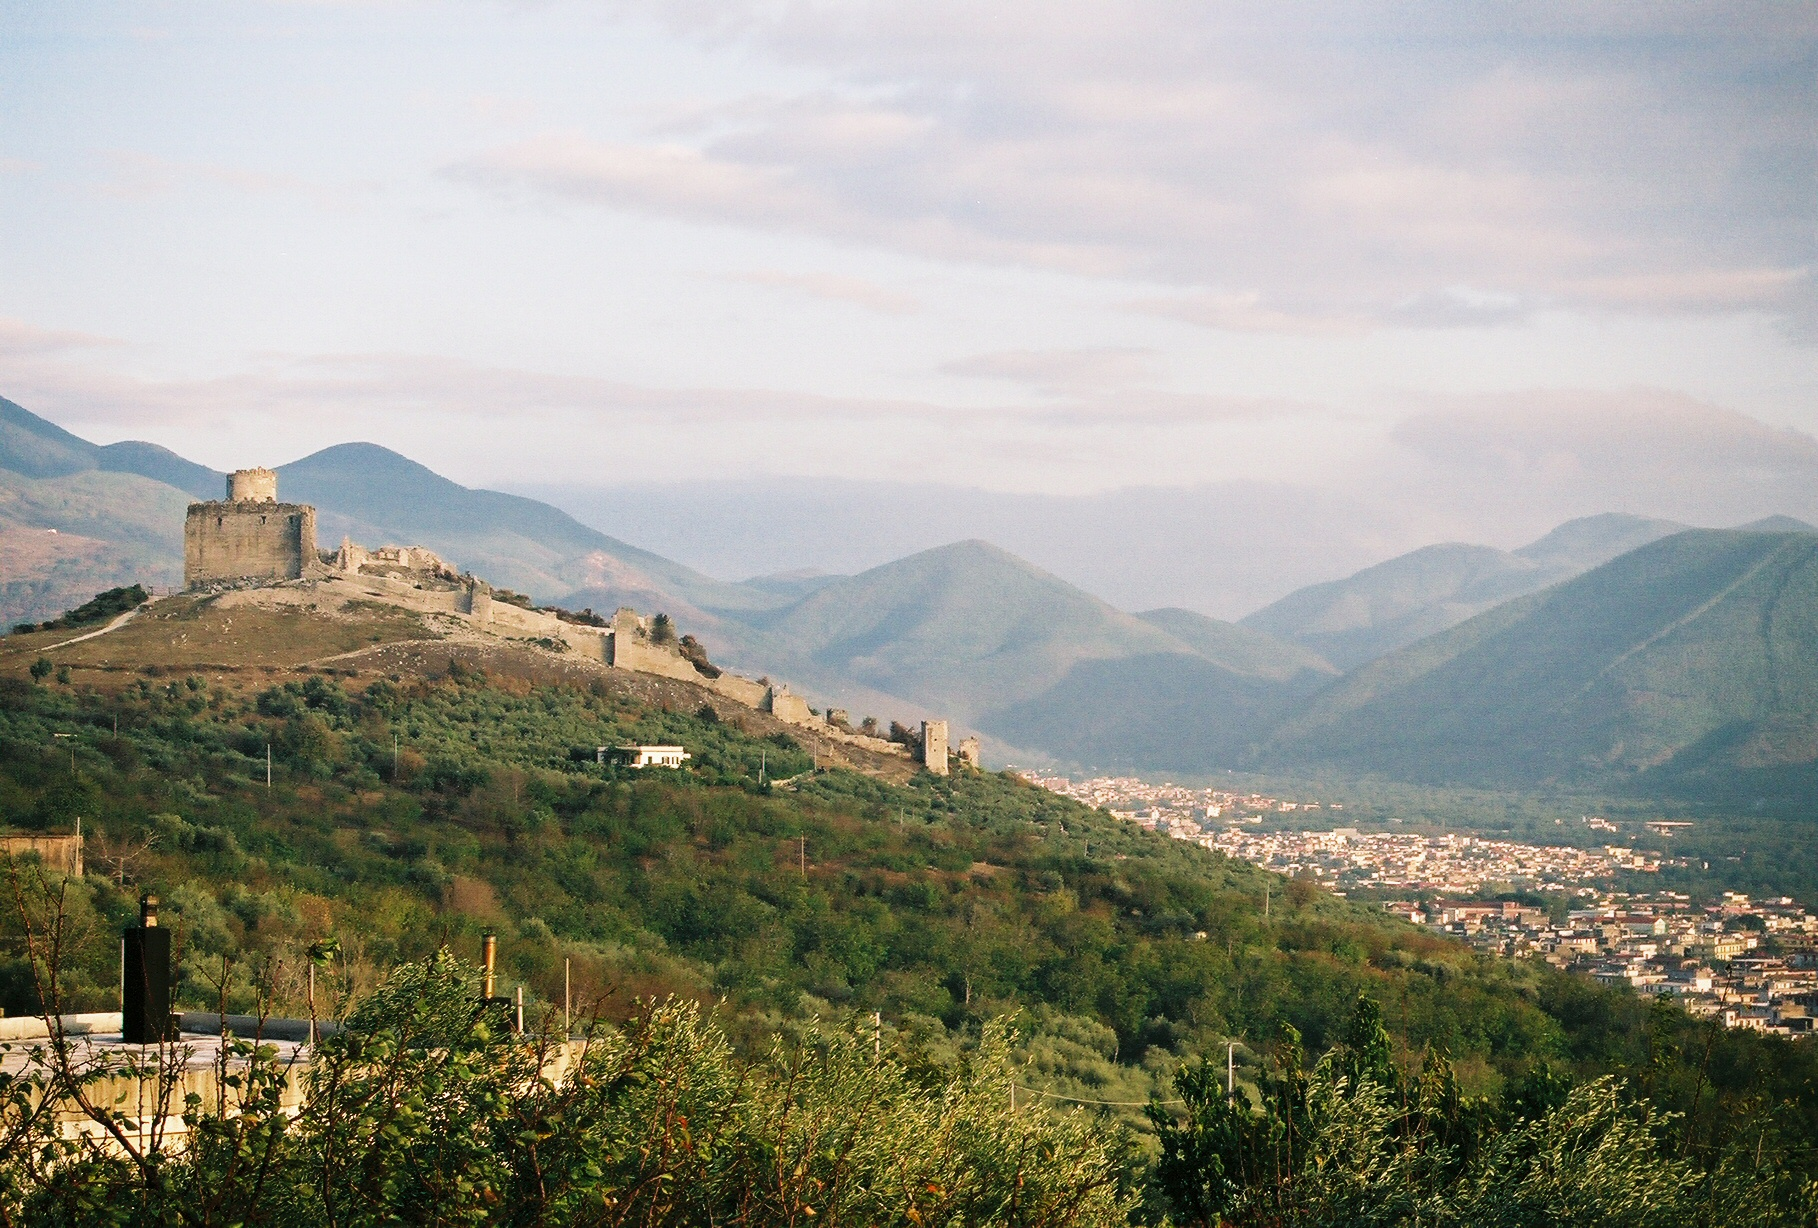 Norman Castle on the hill overlooking Avella, Campania, Italy, Eleanor's birthplace.